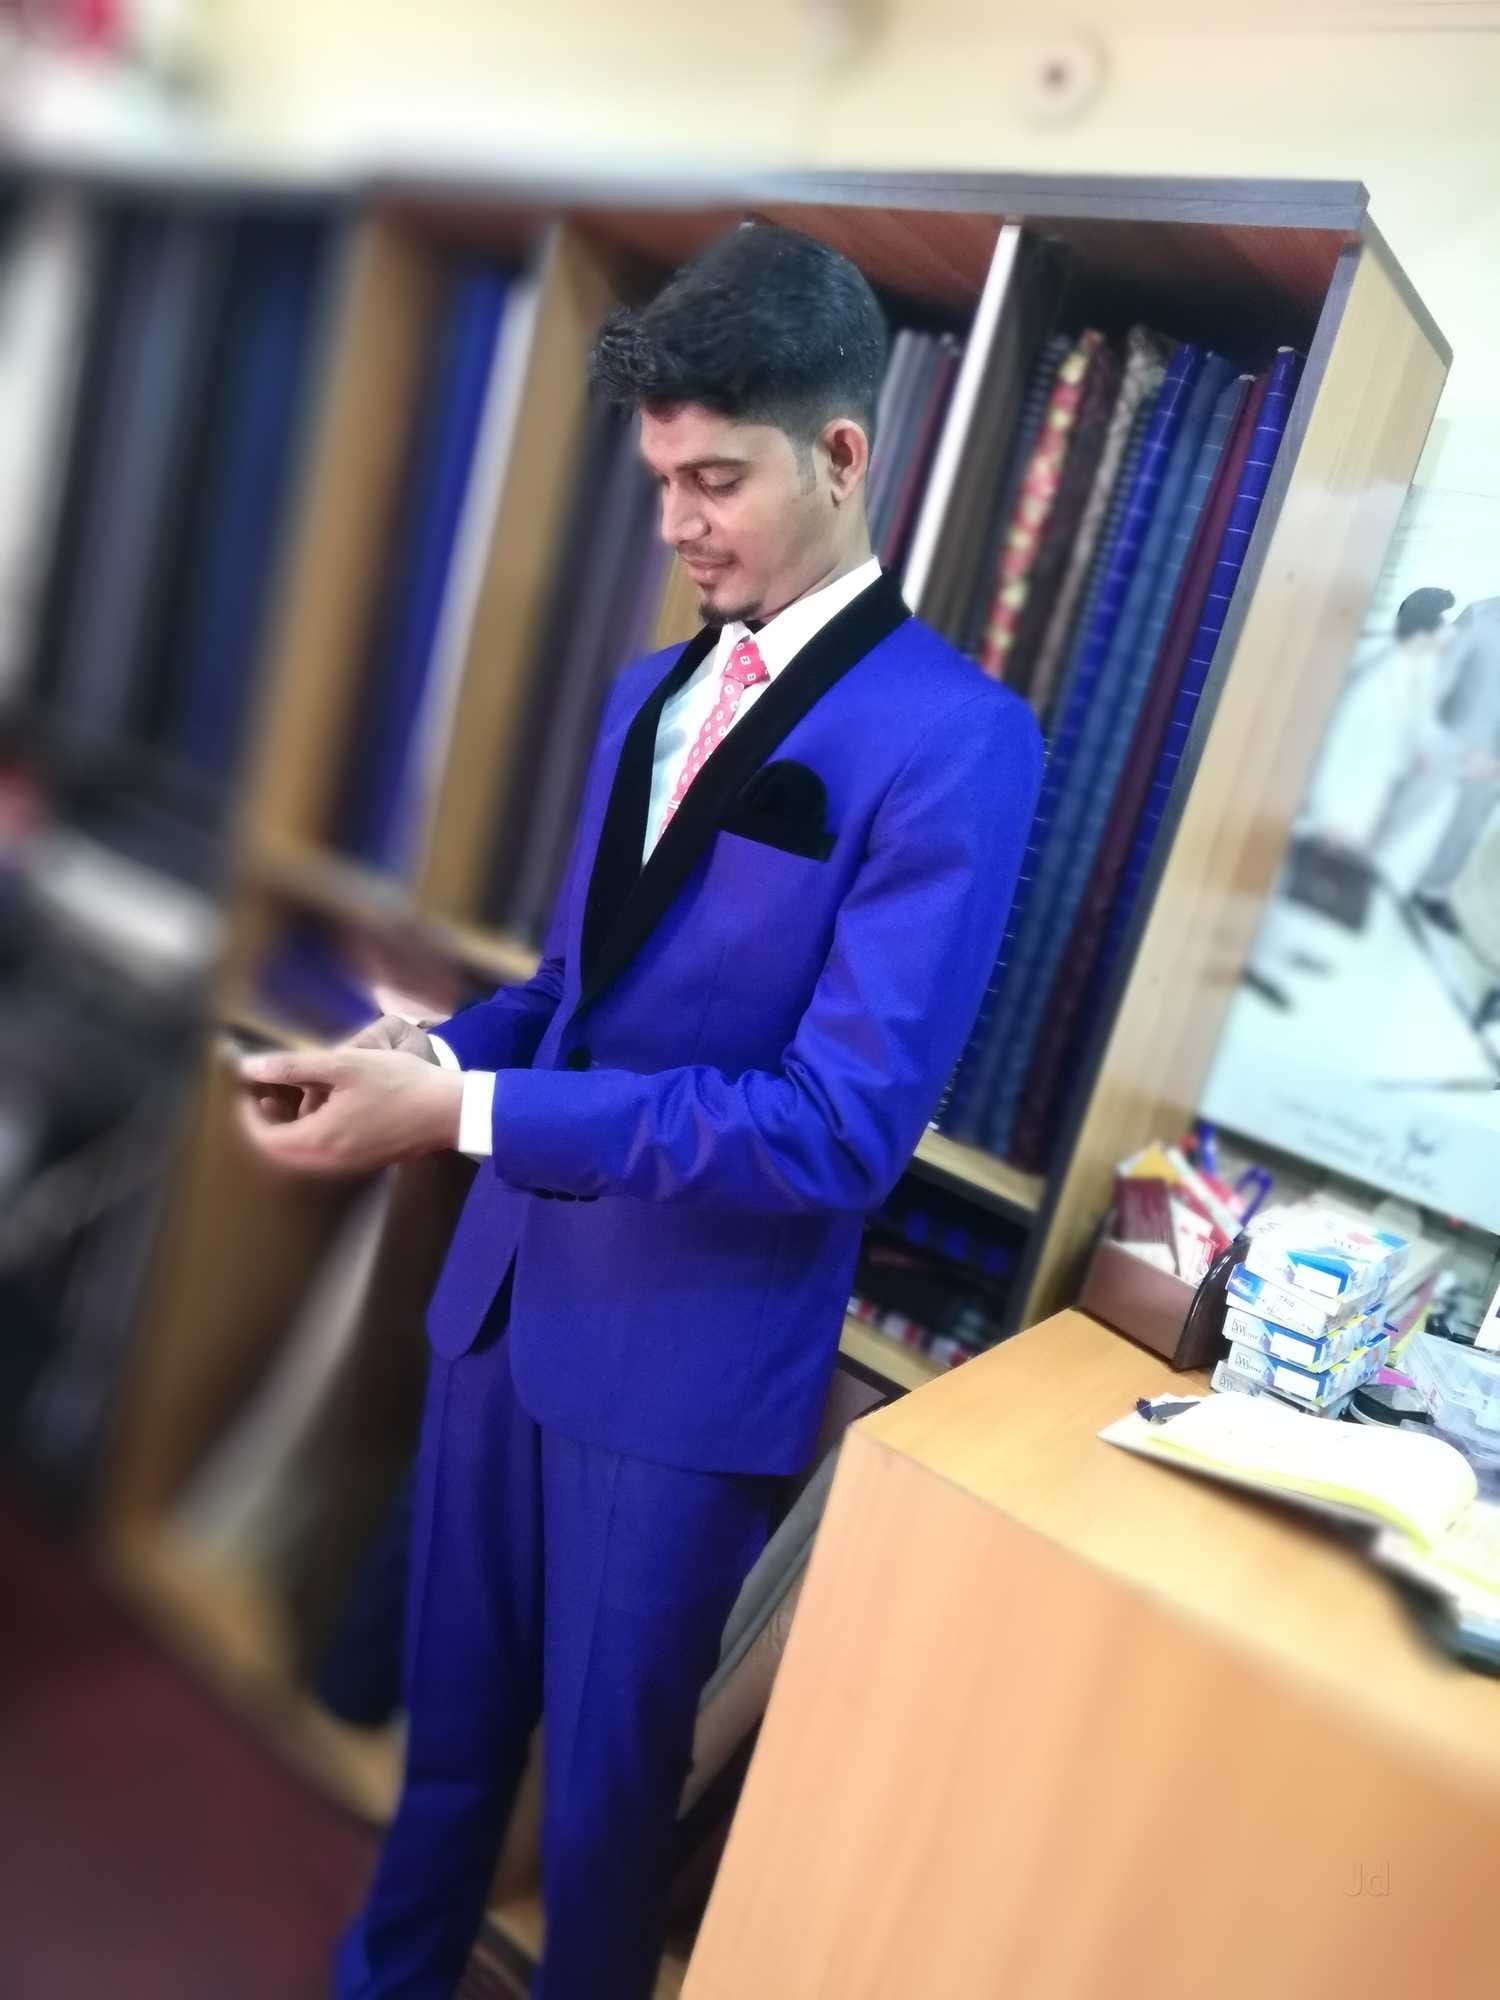 d34f71f6cf91a Top 100 Tailors For Gents Suit in Chennai - Best Tailors For Men ...